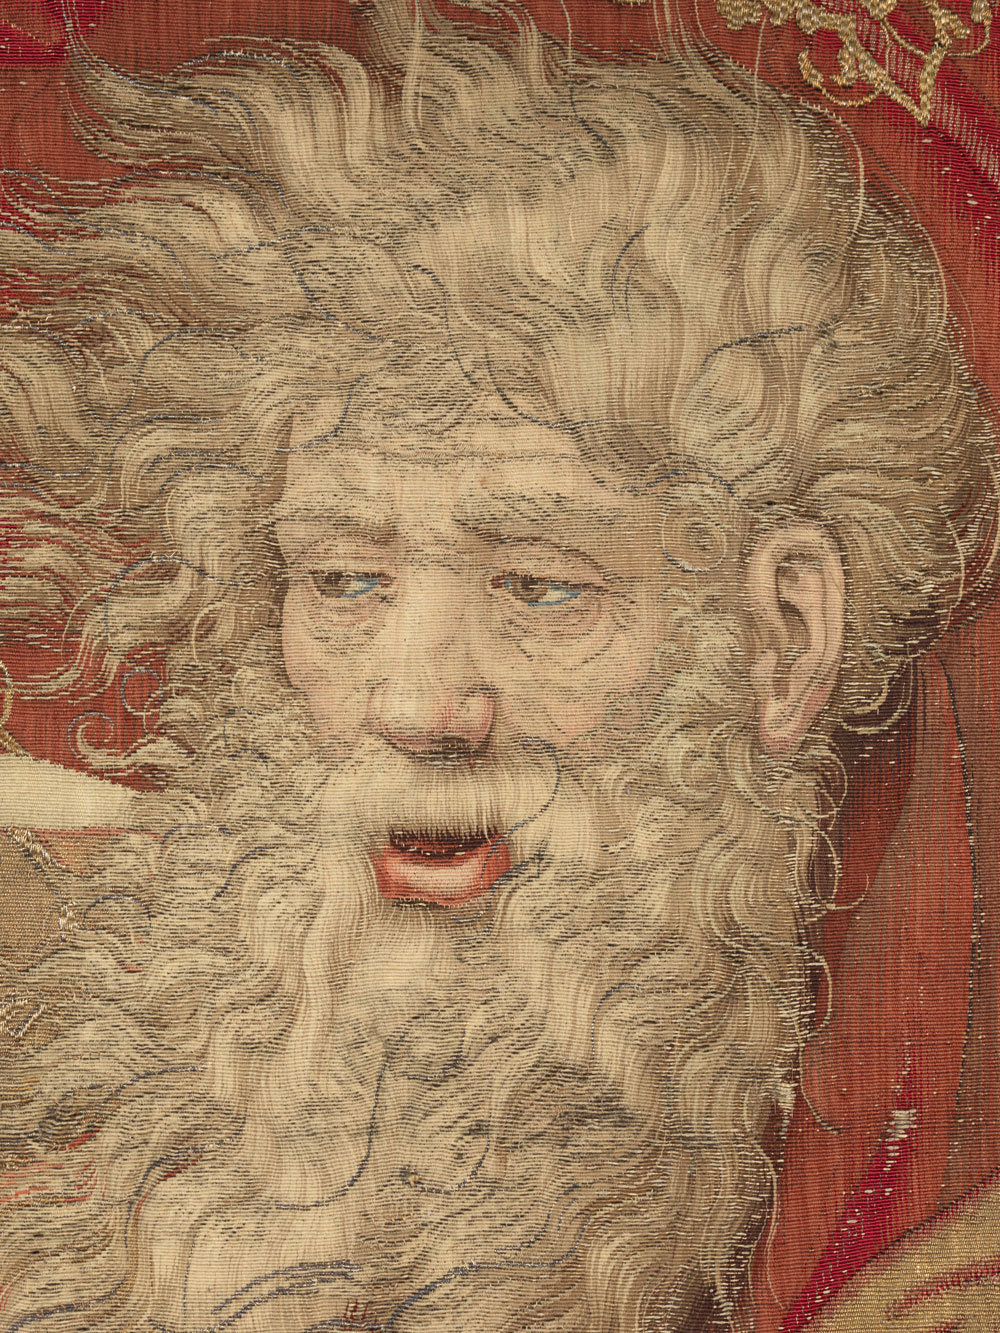 re3.-Detail-of-God's-Face-Palazzo_Pitti